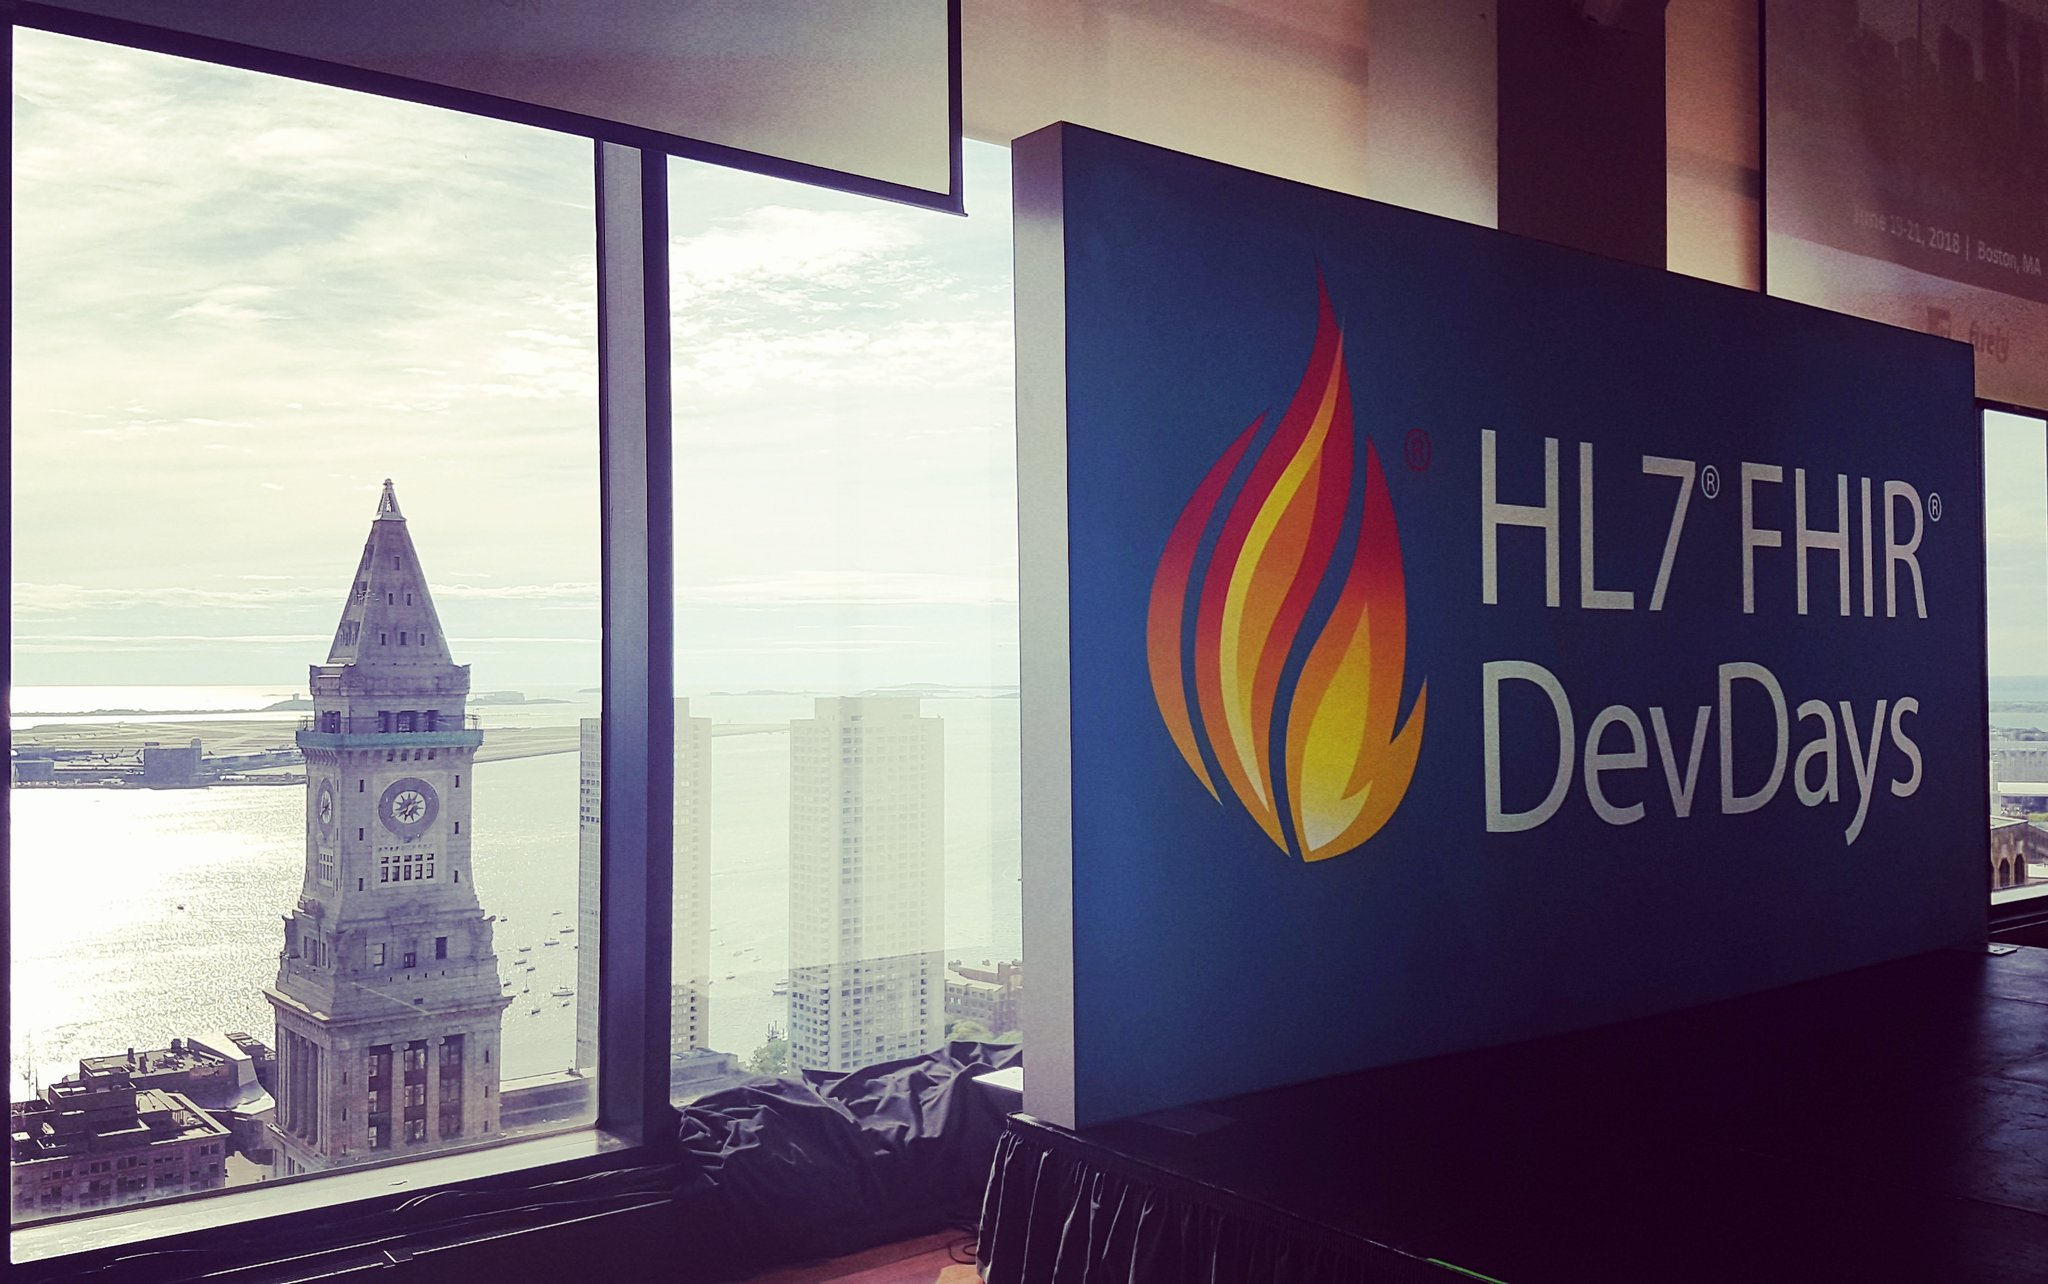 FHIR DevDays sign with Boston backdrop-1